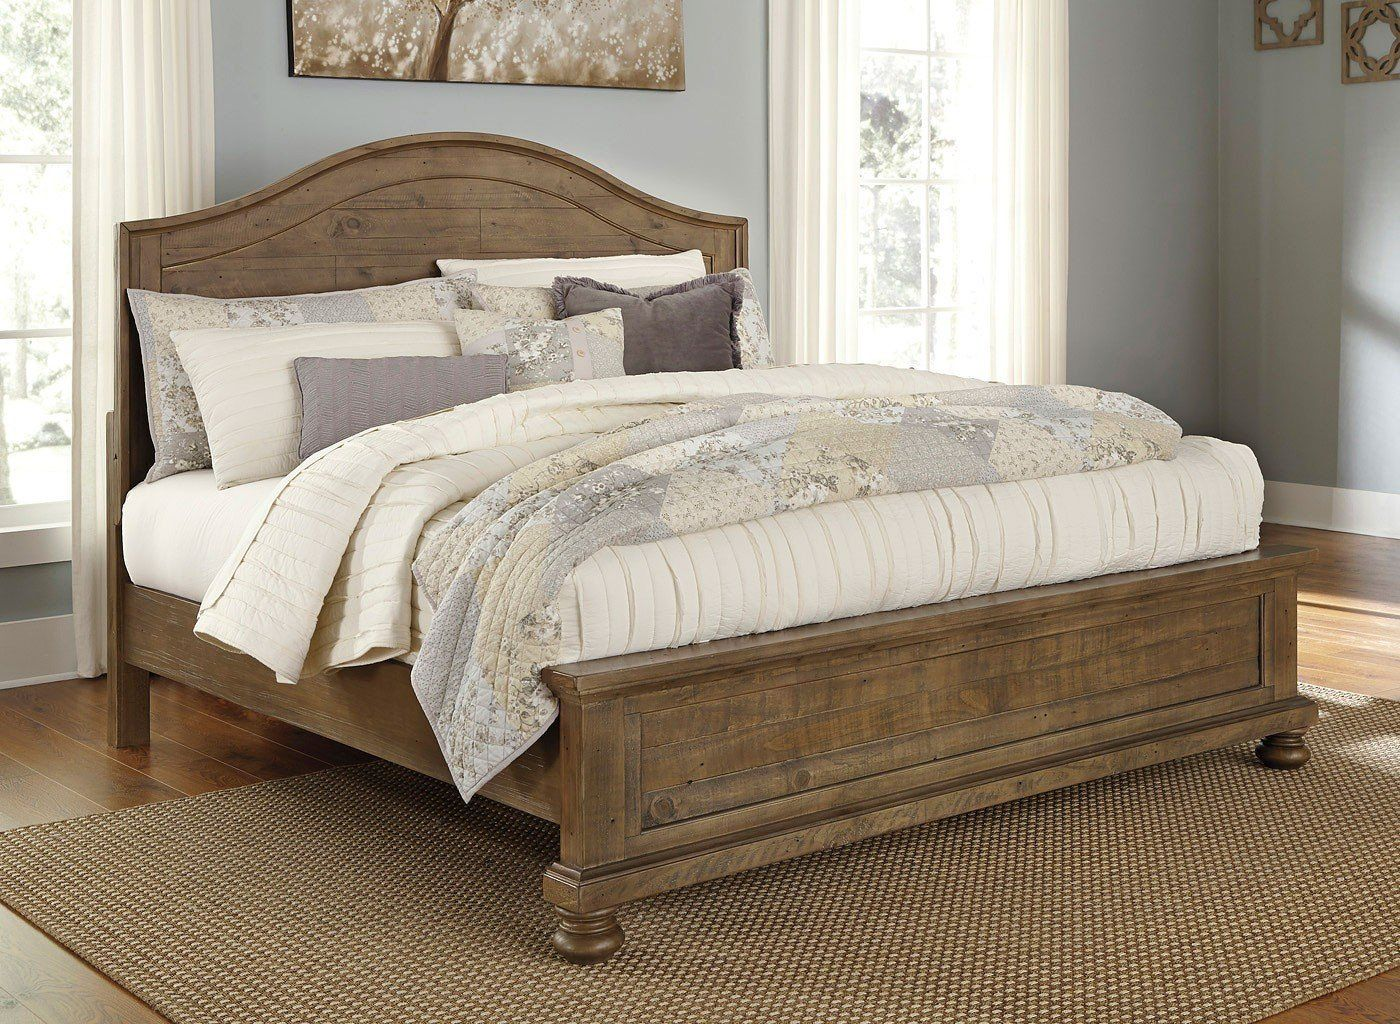 Trishley Panel Bed Bedroom Furniture Sets Small Master Bedroom Master Bedroom Design